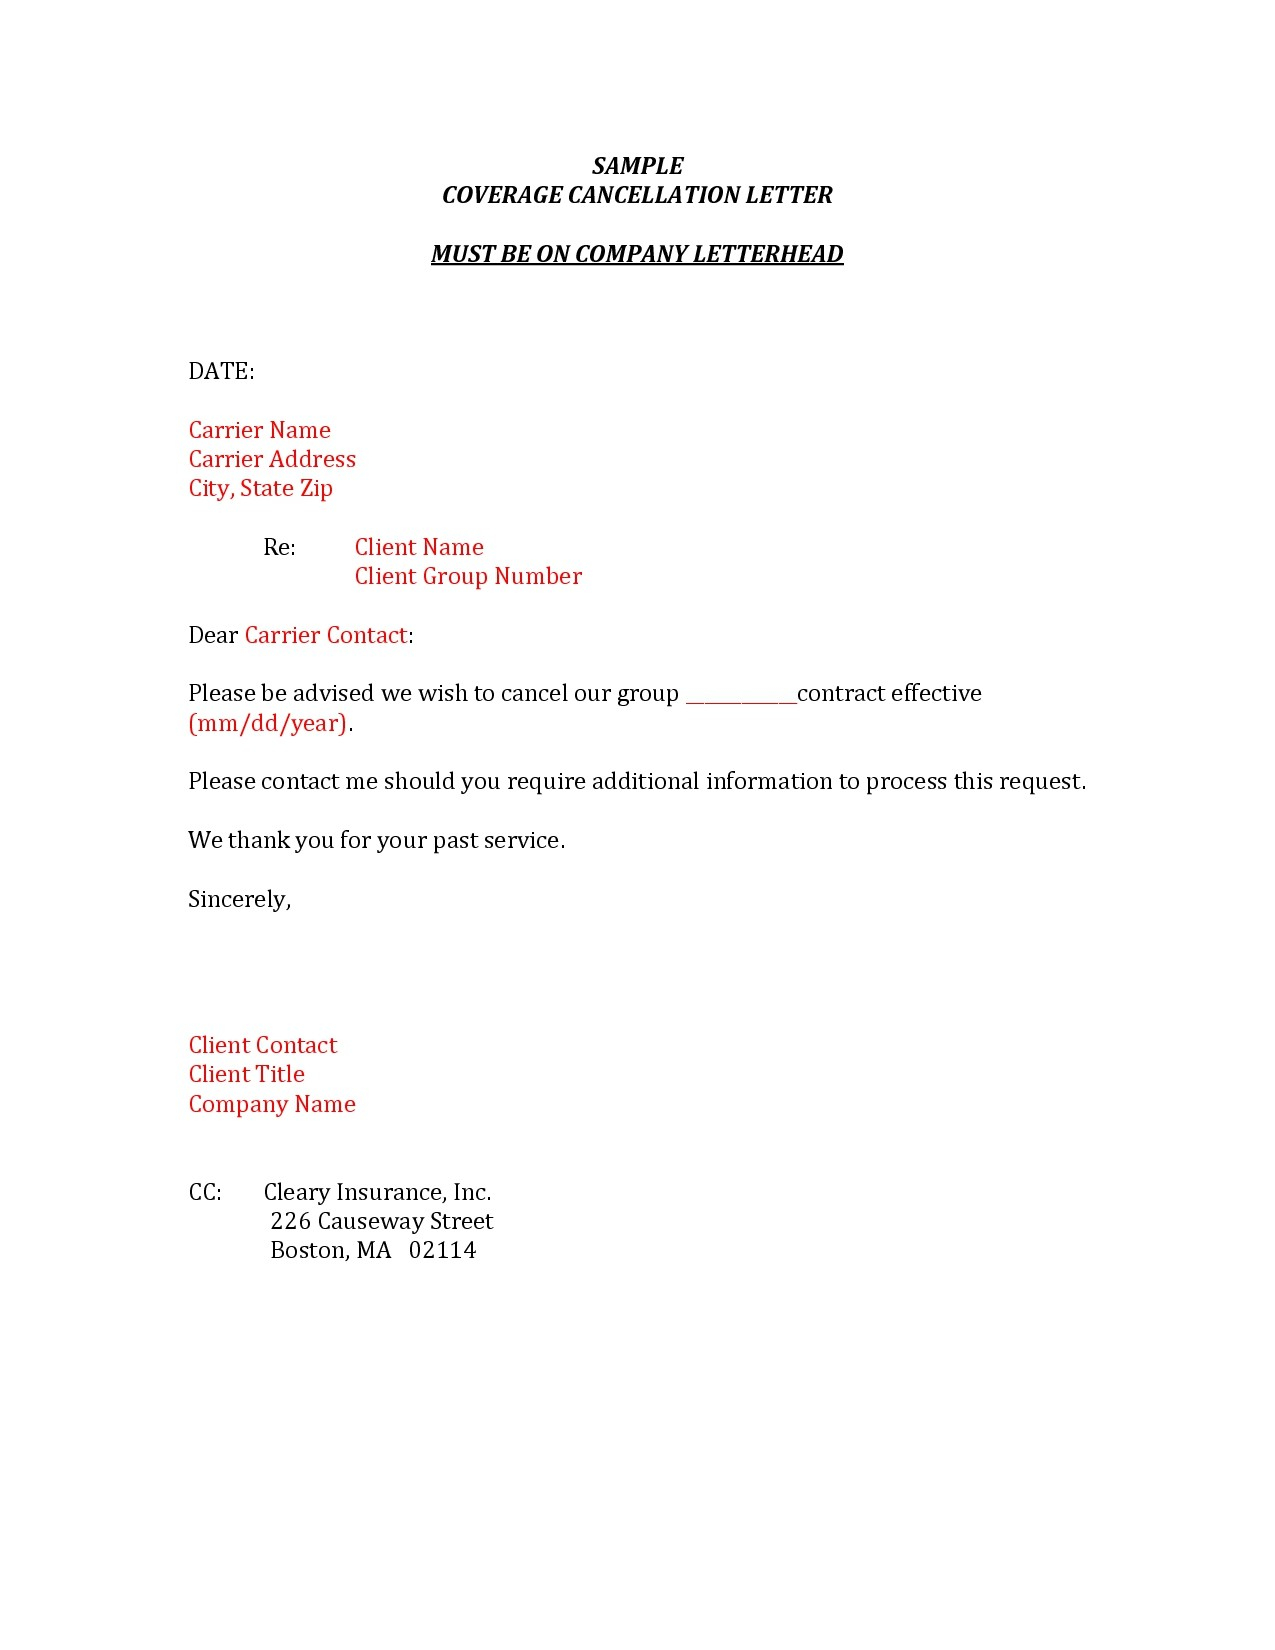 Insurance Cancellation Letter Template - Resume Letter format Archives Page 56 Of 106 Jameskilloran Co